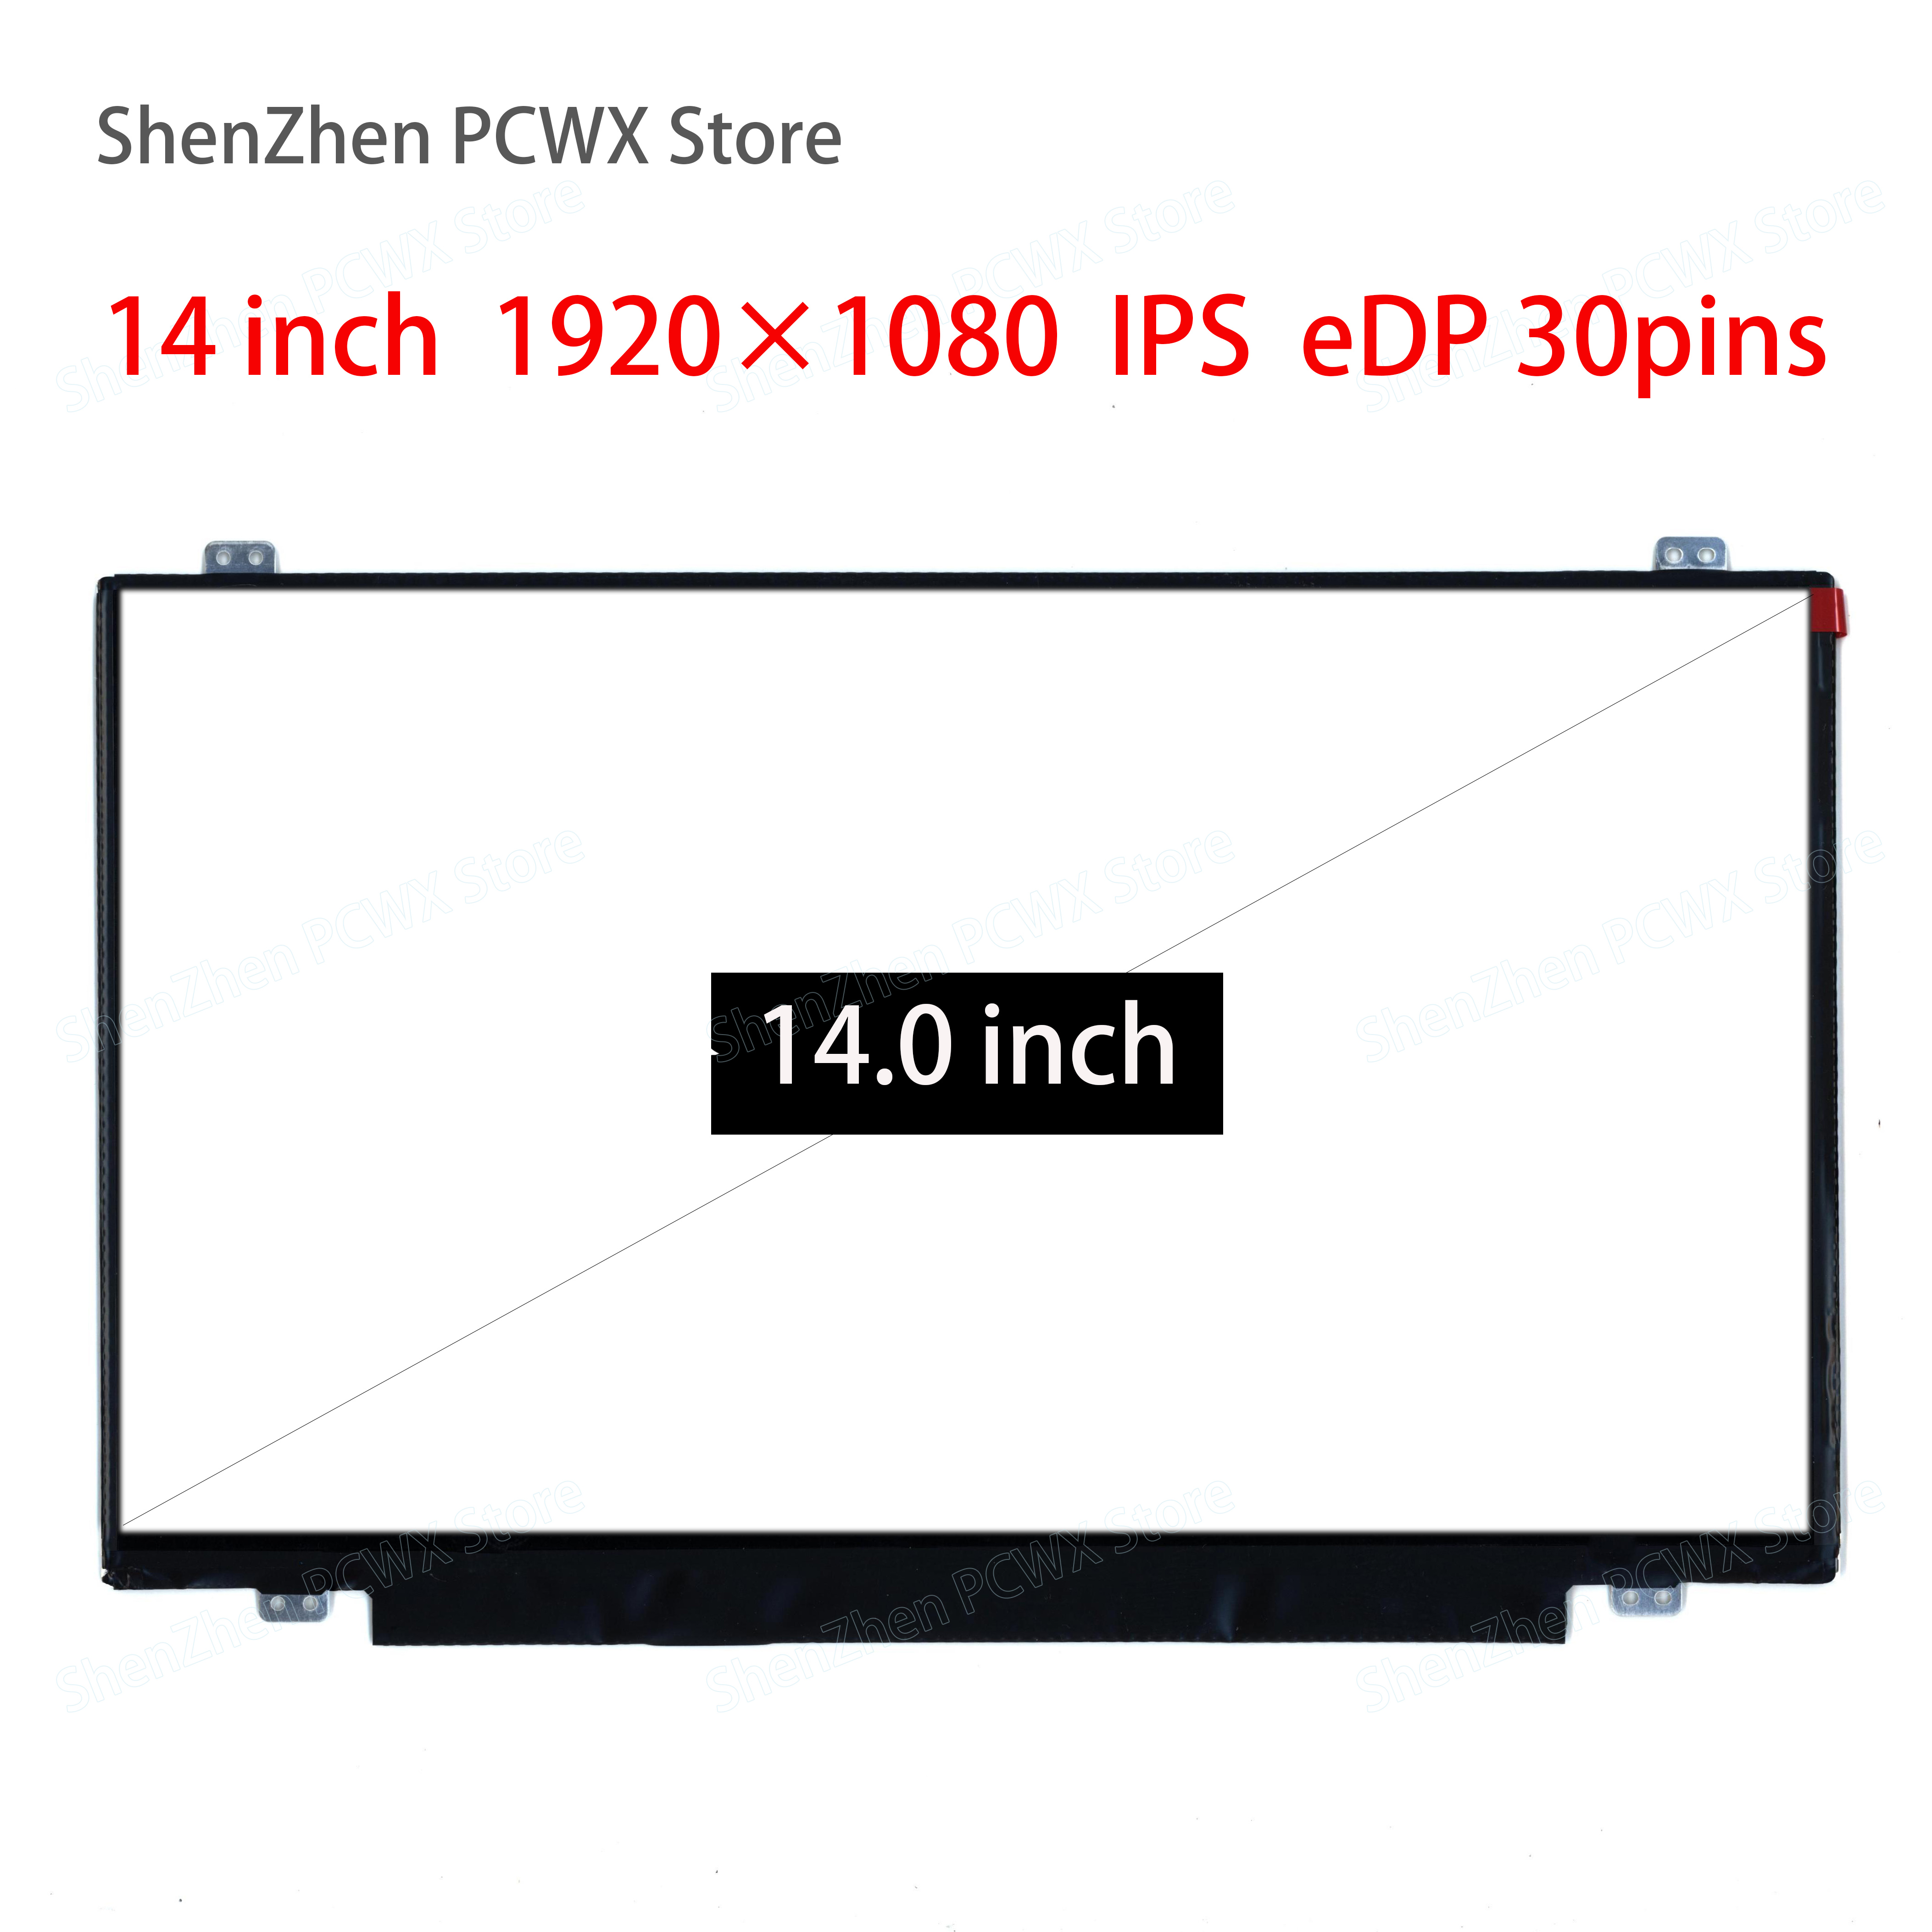 14.0 Inch Laptop LCD Screen For Lenovo Thinkpad T440p IPS Resolution 1920 * 1080 EDP 30pins LP140WF3-SPD1 Notebook Screen